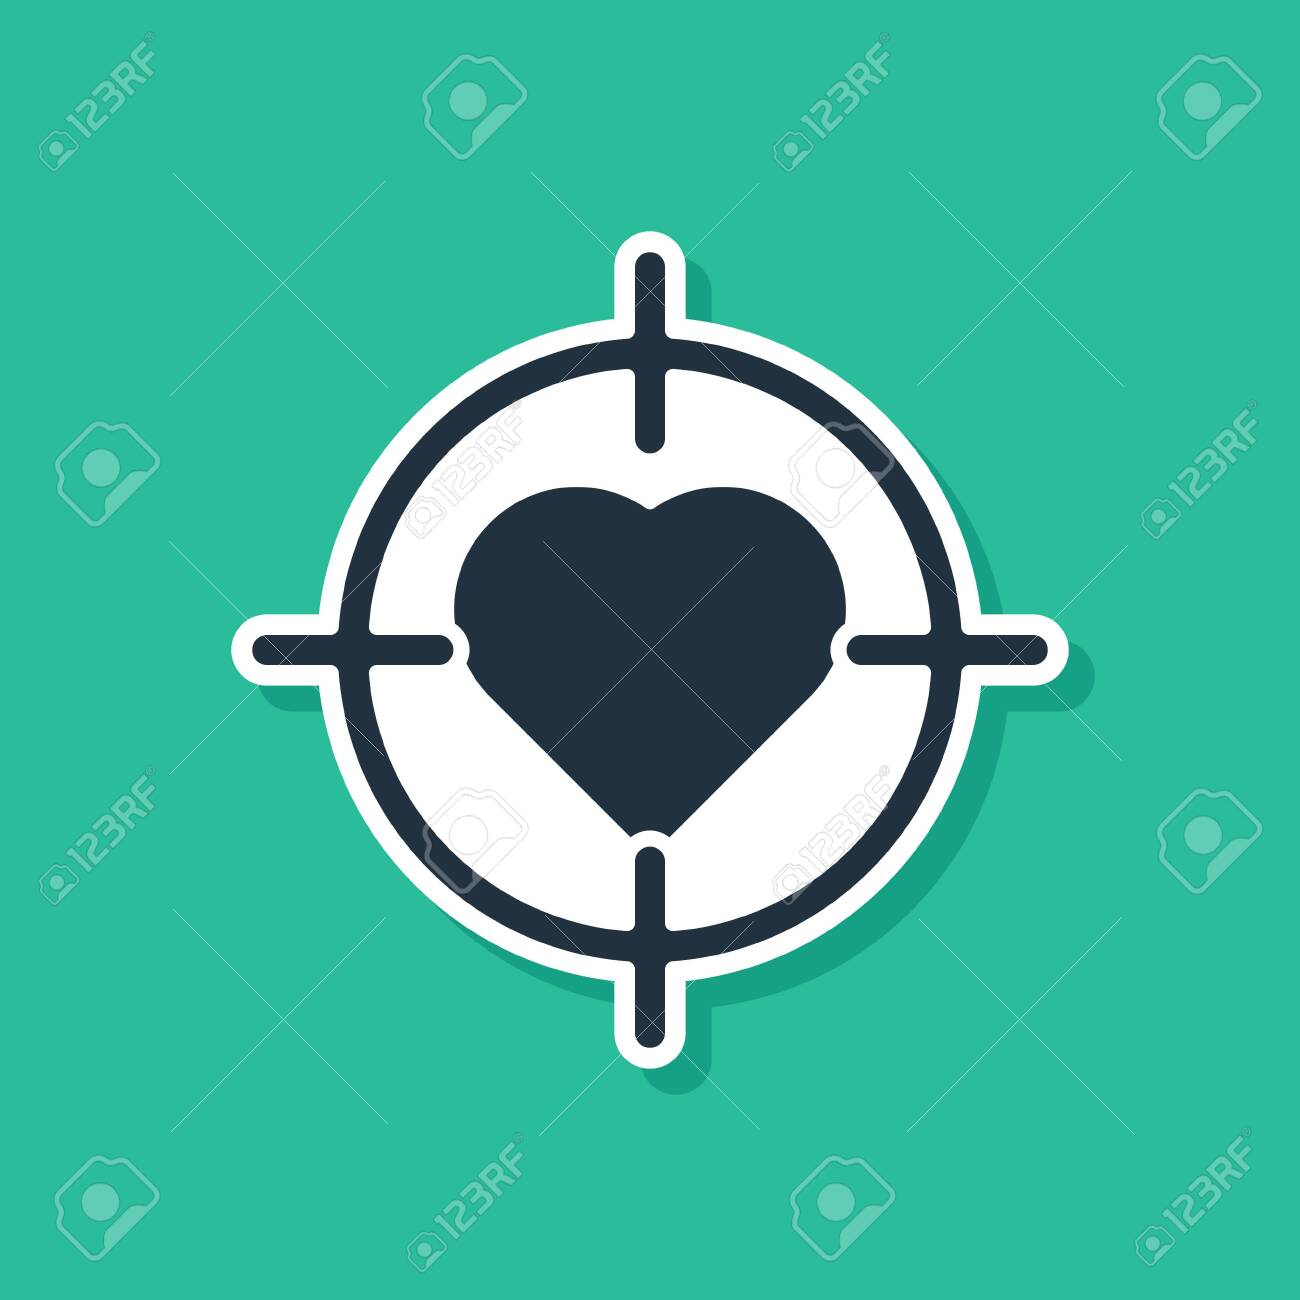 blue heart in the center of darts target aim icon isolated on royalty free cliparts vectors and stock illustration image 142460346 123rf com